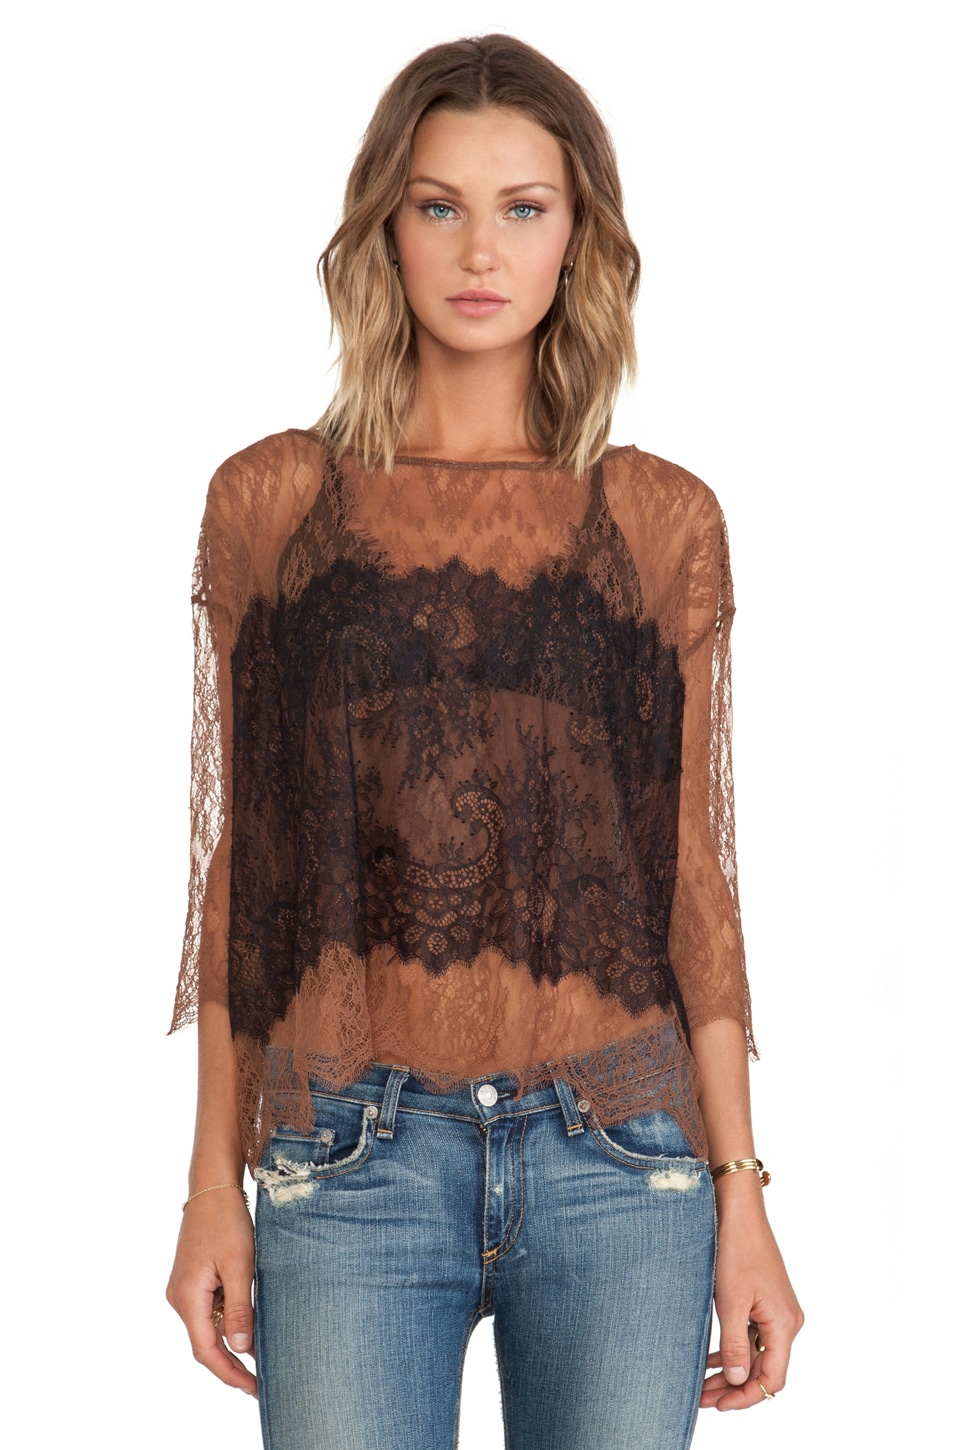 Bailey 44 Table Lace Top in Butterscotch & Black